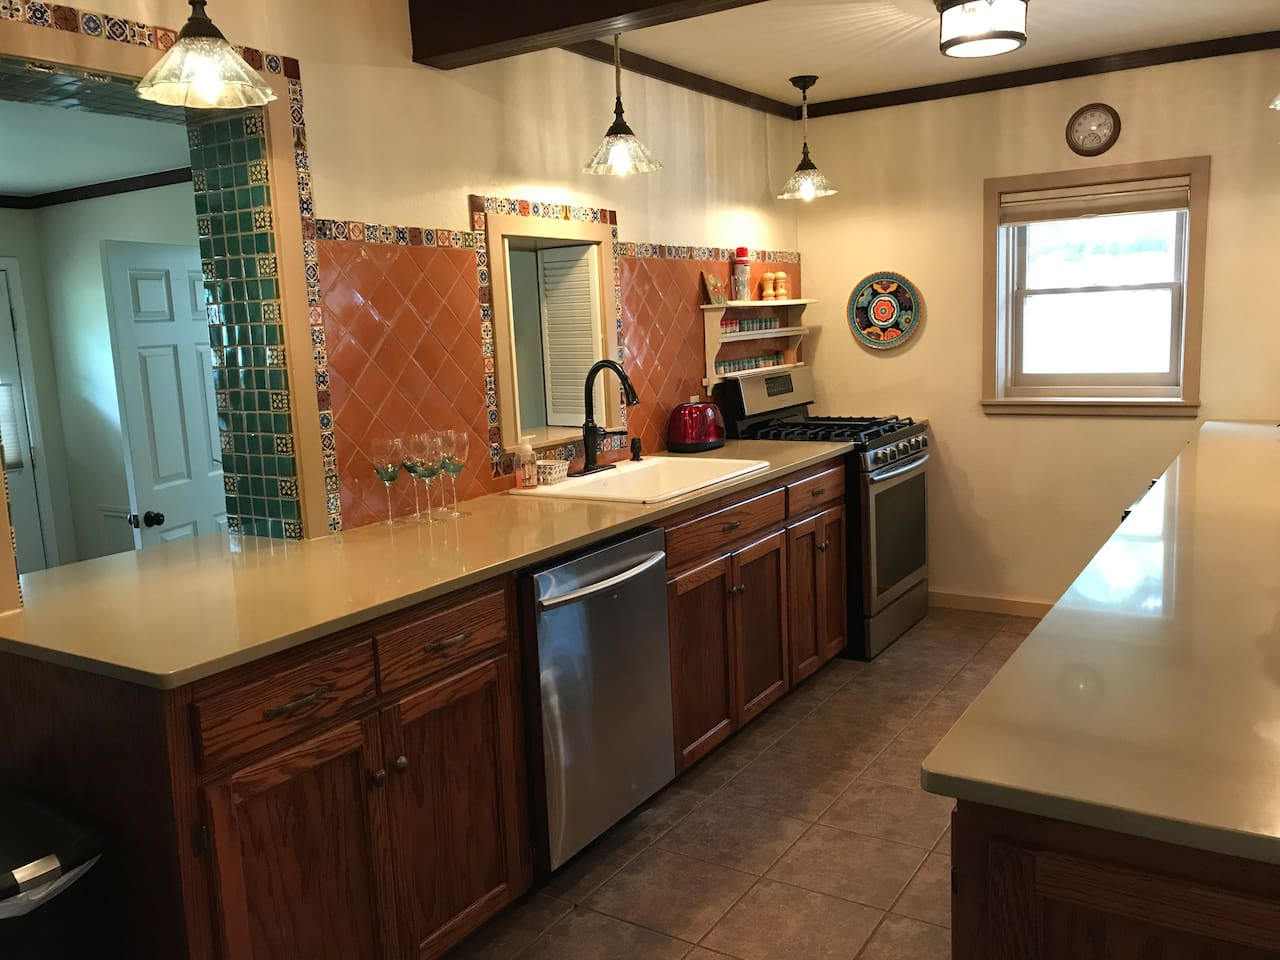 Bachelor's kitchen includes quartz countertops, dishwasher, gas stove and 3 mini fridges.  Period correct details abound in this beautiful 1929 Casita.  The home has been in our family for 50 years.  It was  offered on Air BNB for the first time in June of 2017.